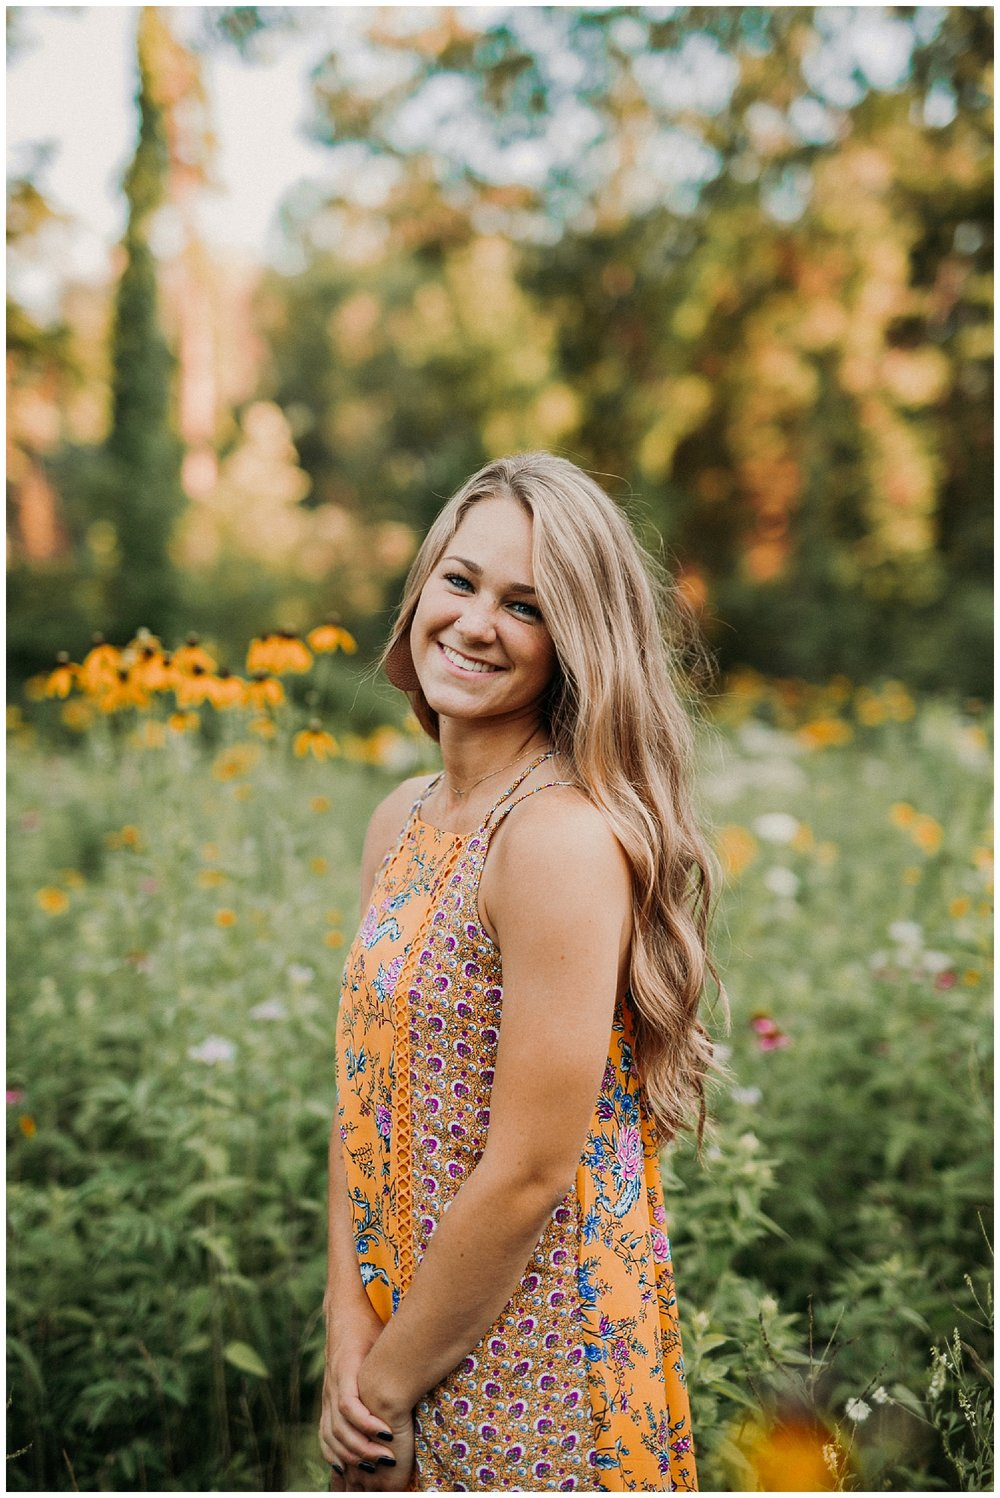 lindybeth photography - senior pictures - maddie-125.jpg